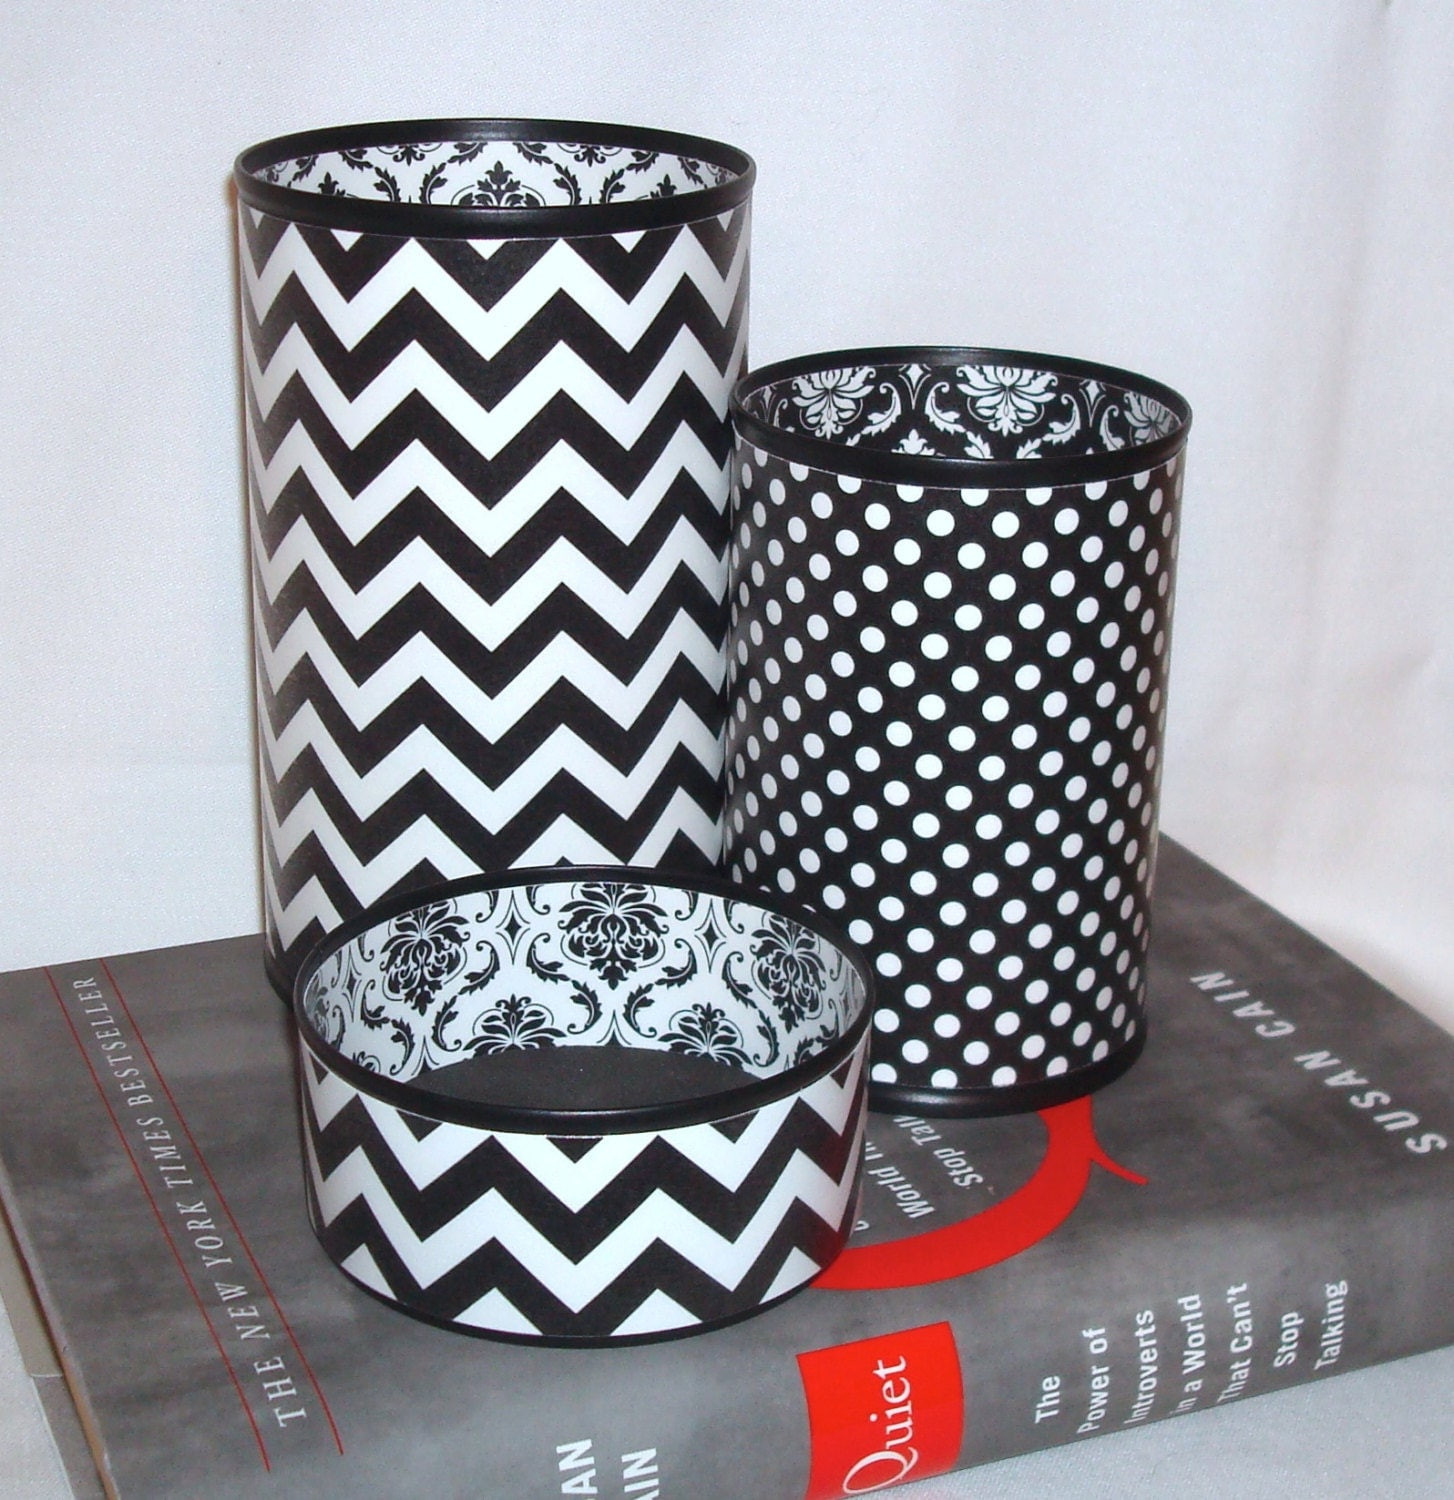 Black White Desk Accessories Chevron Damask Polka Dot Pencil